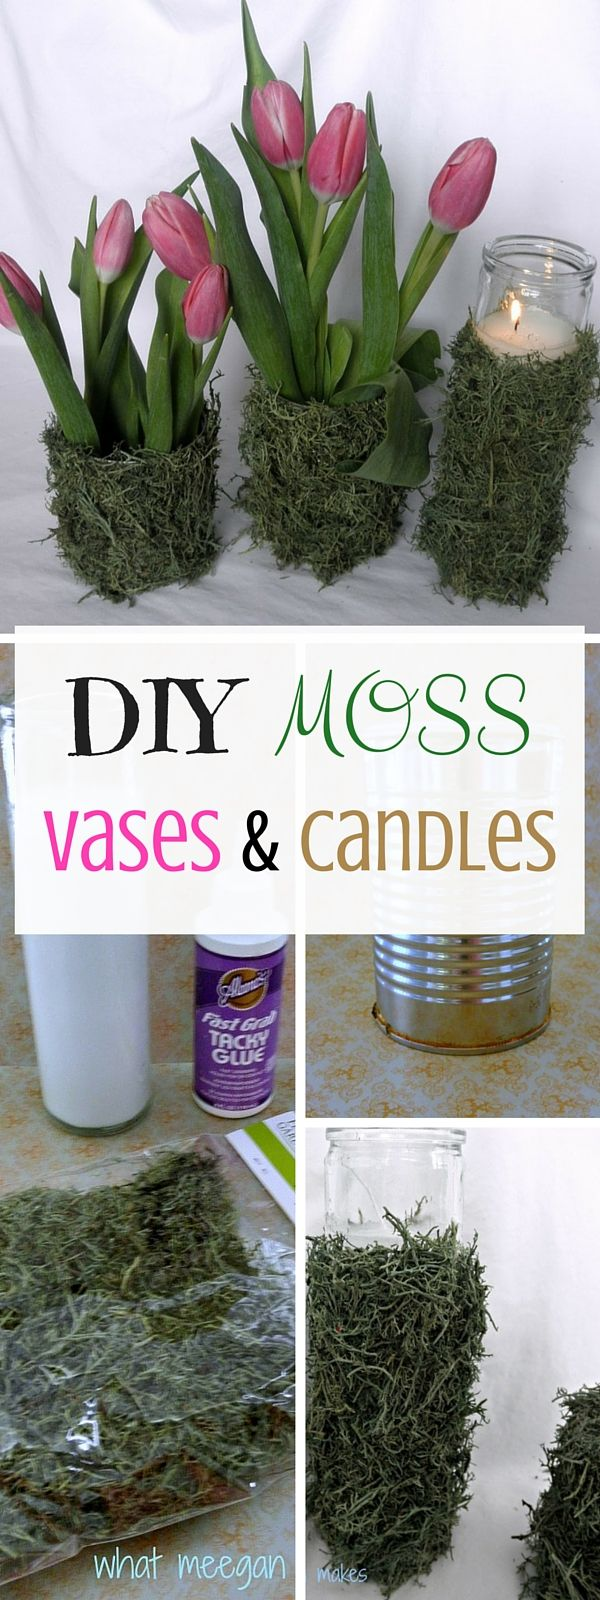 Check out the tutorial: #DIY Moss Vases #crafts #homedecor